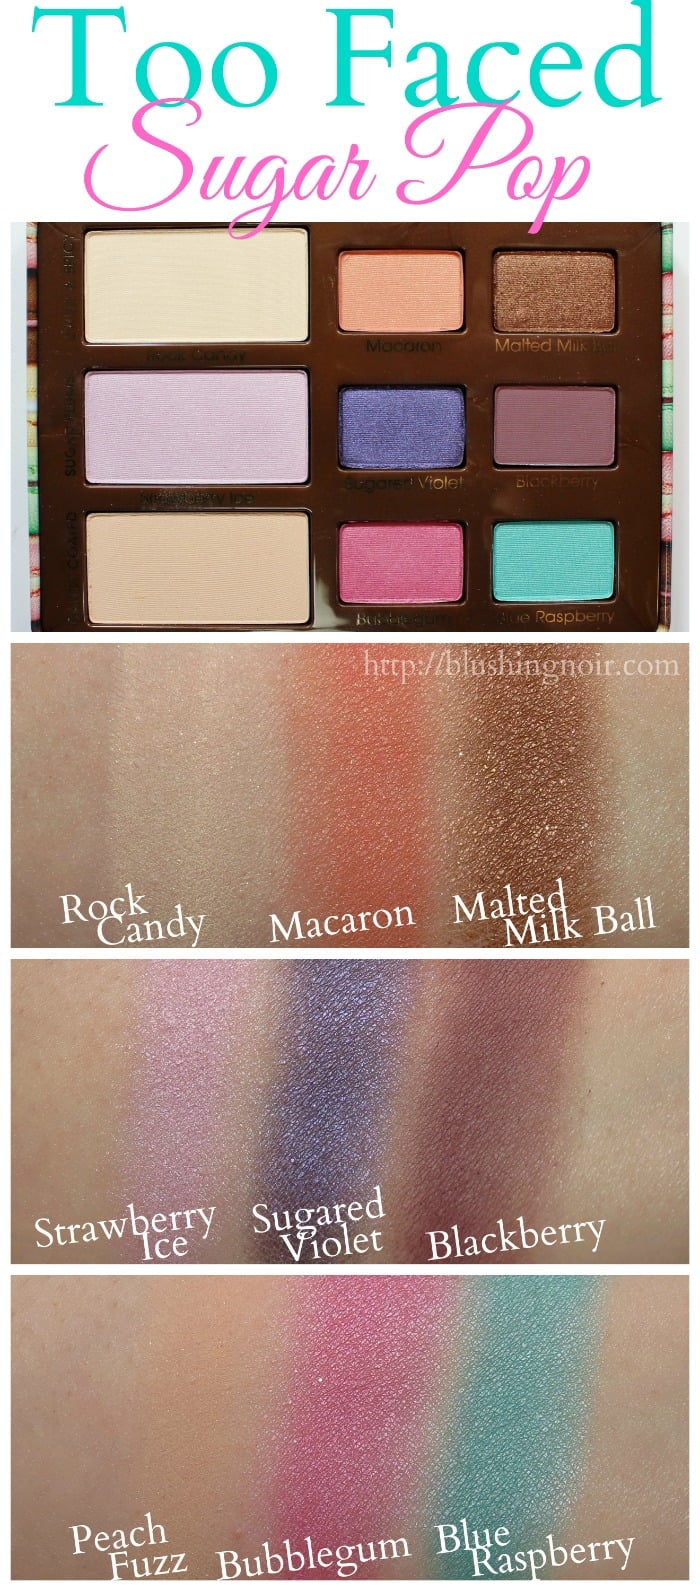 Too Faced Sugar Pop Palette Swatches